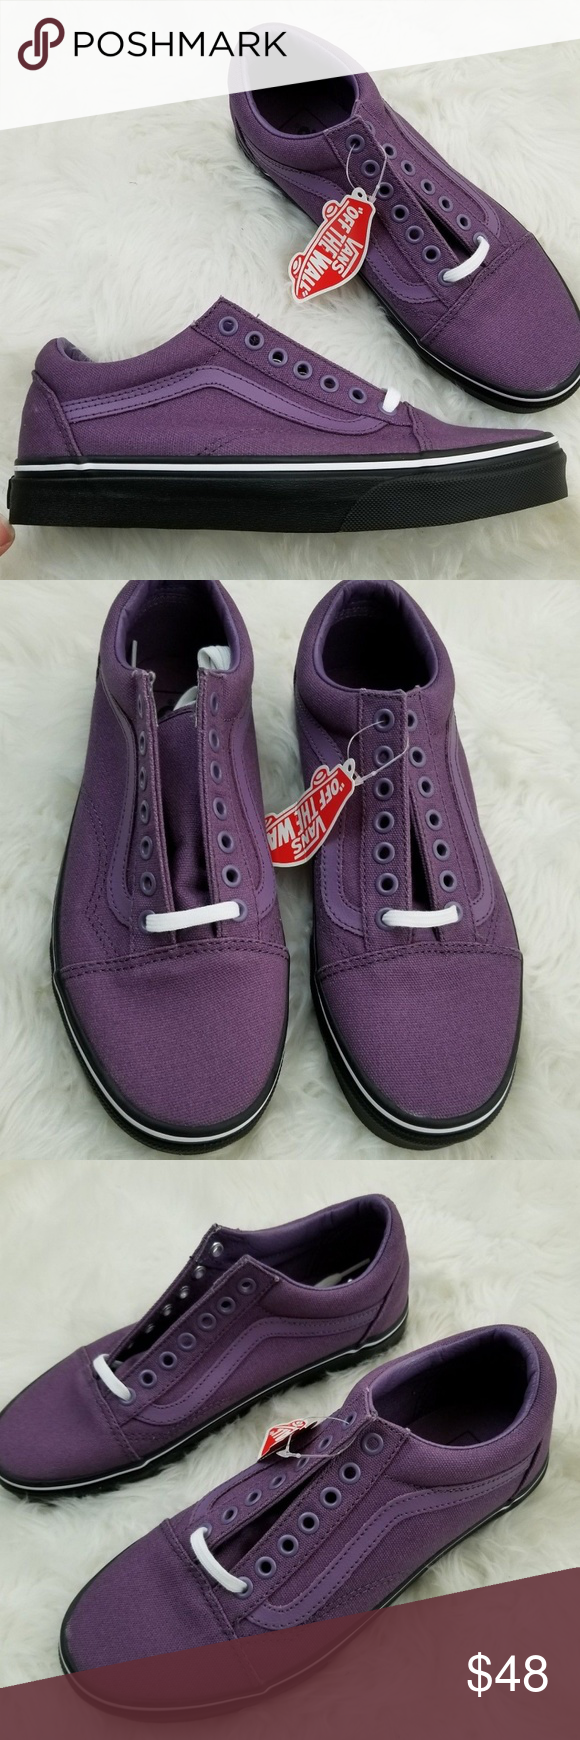 e48ed8f0738f VANS Old Skool Black Mountain Grape Shoes W 9 Brand new in box. Vans Old  Skool Black Outsole Shoes in Mountain Grape and Black. Men s Size 7.5. Women s  Size ...